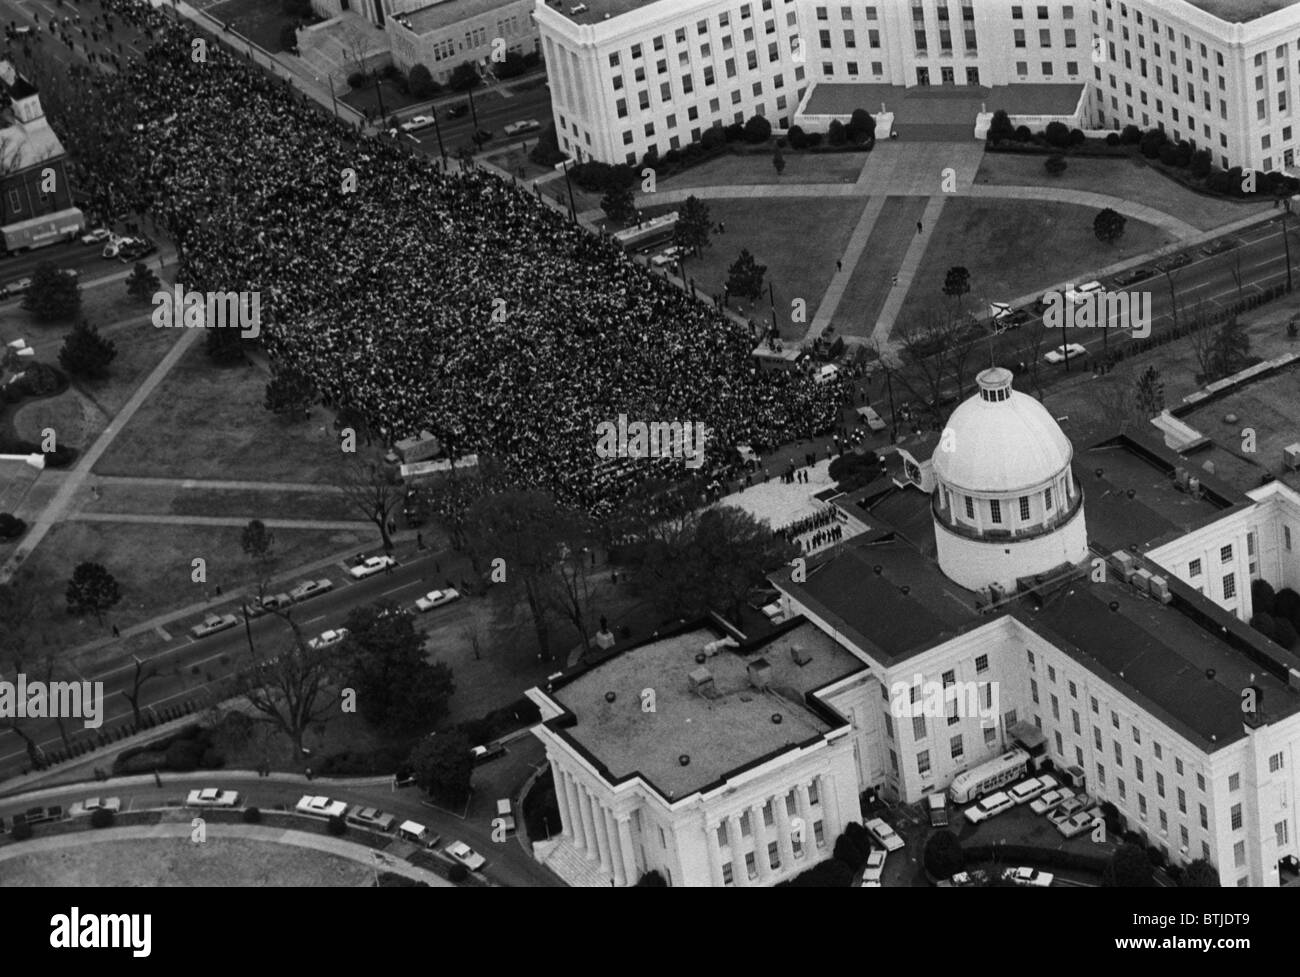 Civil rights marchers in front of the Alabama State Capitol at the end of their march from Selma to Montgomery, - Stock Image